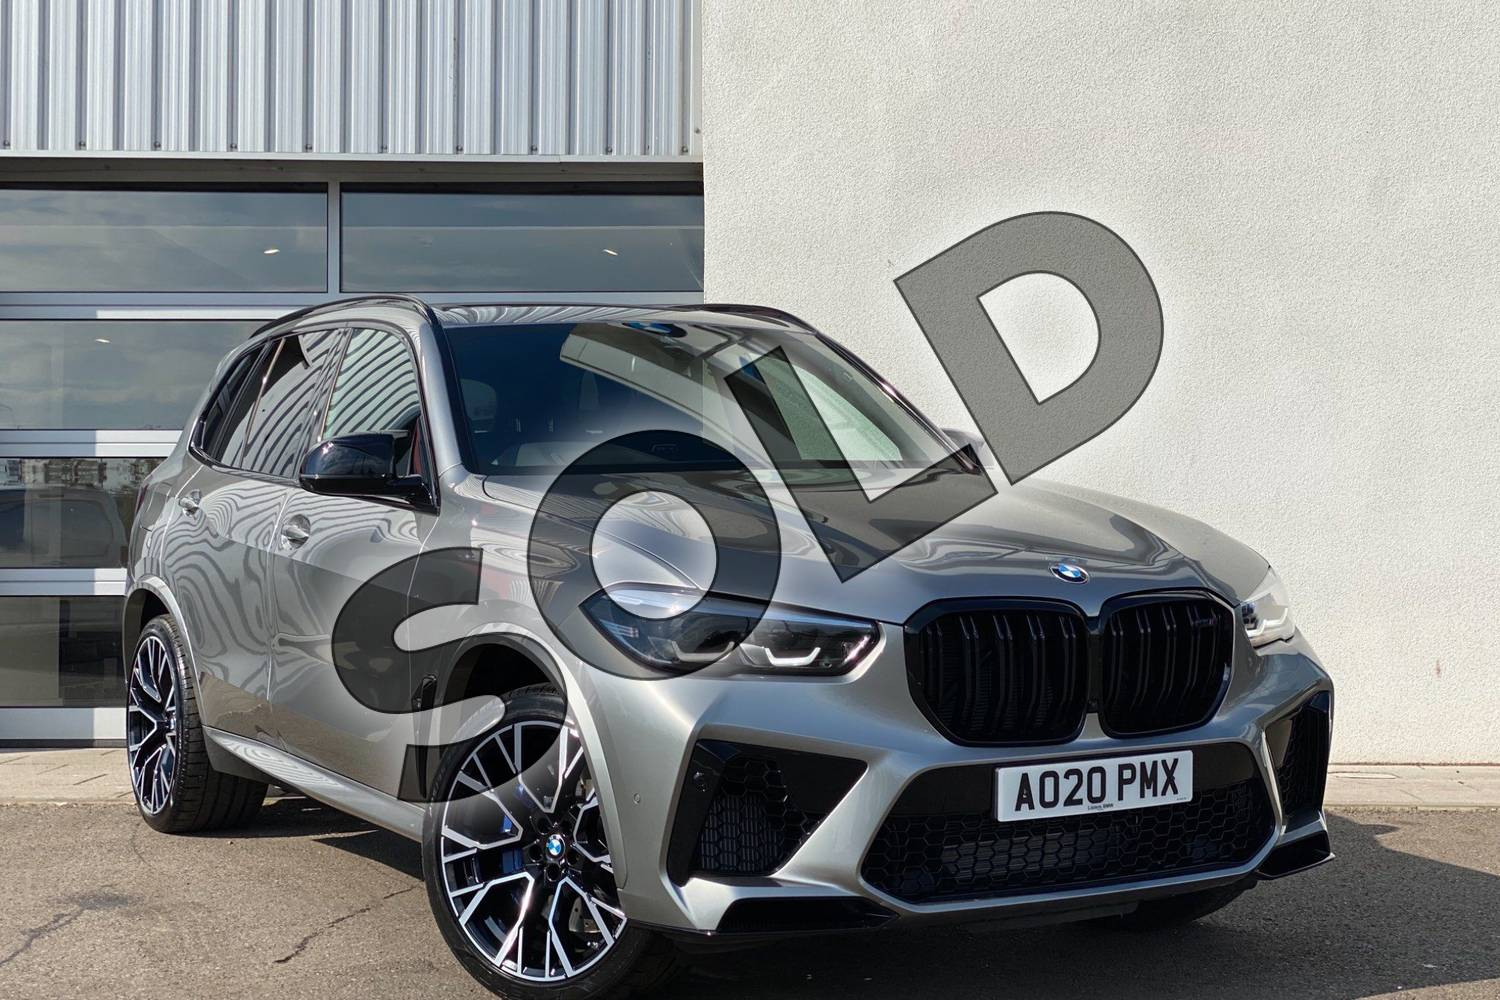 Bmw X5 M Xdrive X5 M Competition 5dr Step Auto For Sale At Listers King S Lynn Bmw Ref 031 U080251